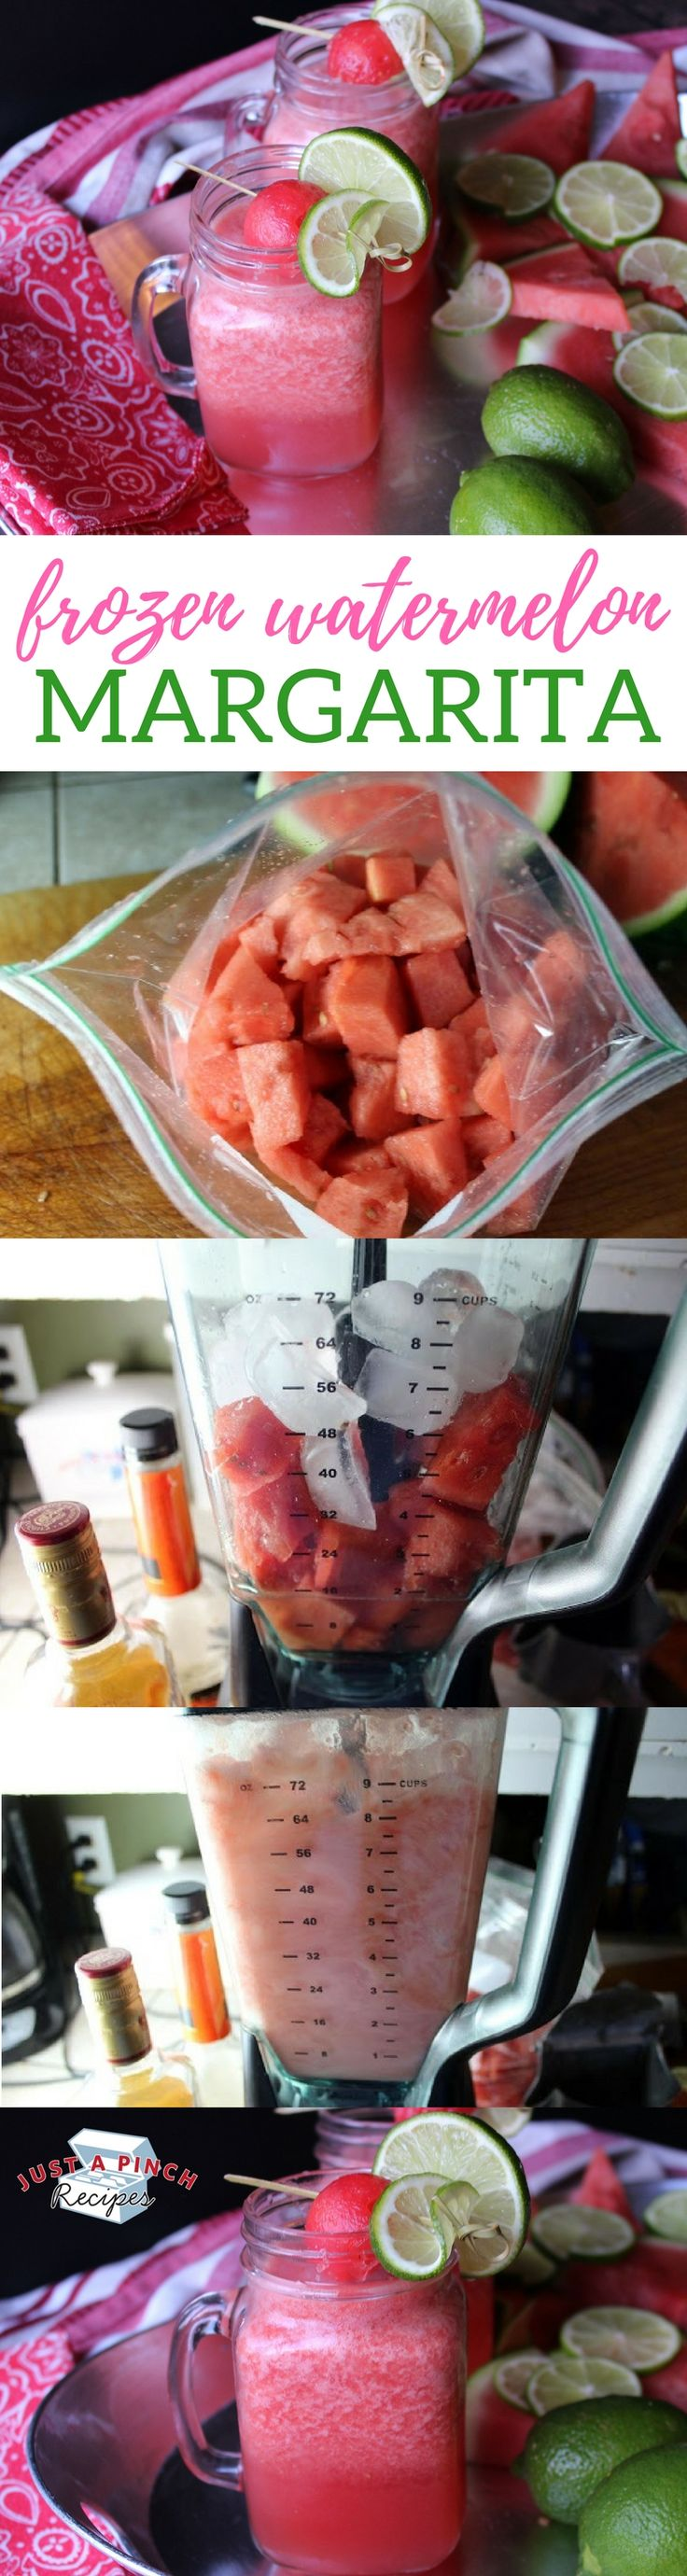 This is the perfect summer drink! We love this easy frozen watermelon margarita!